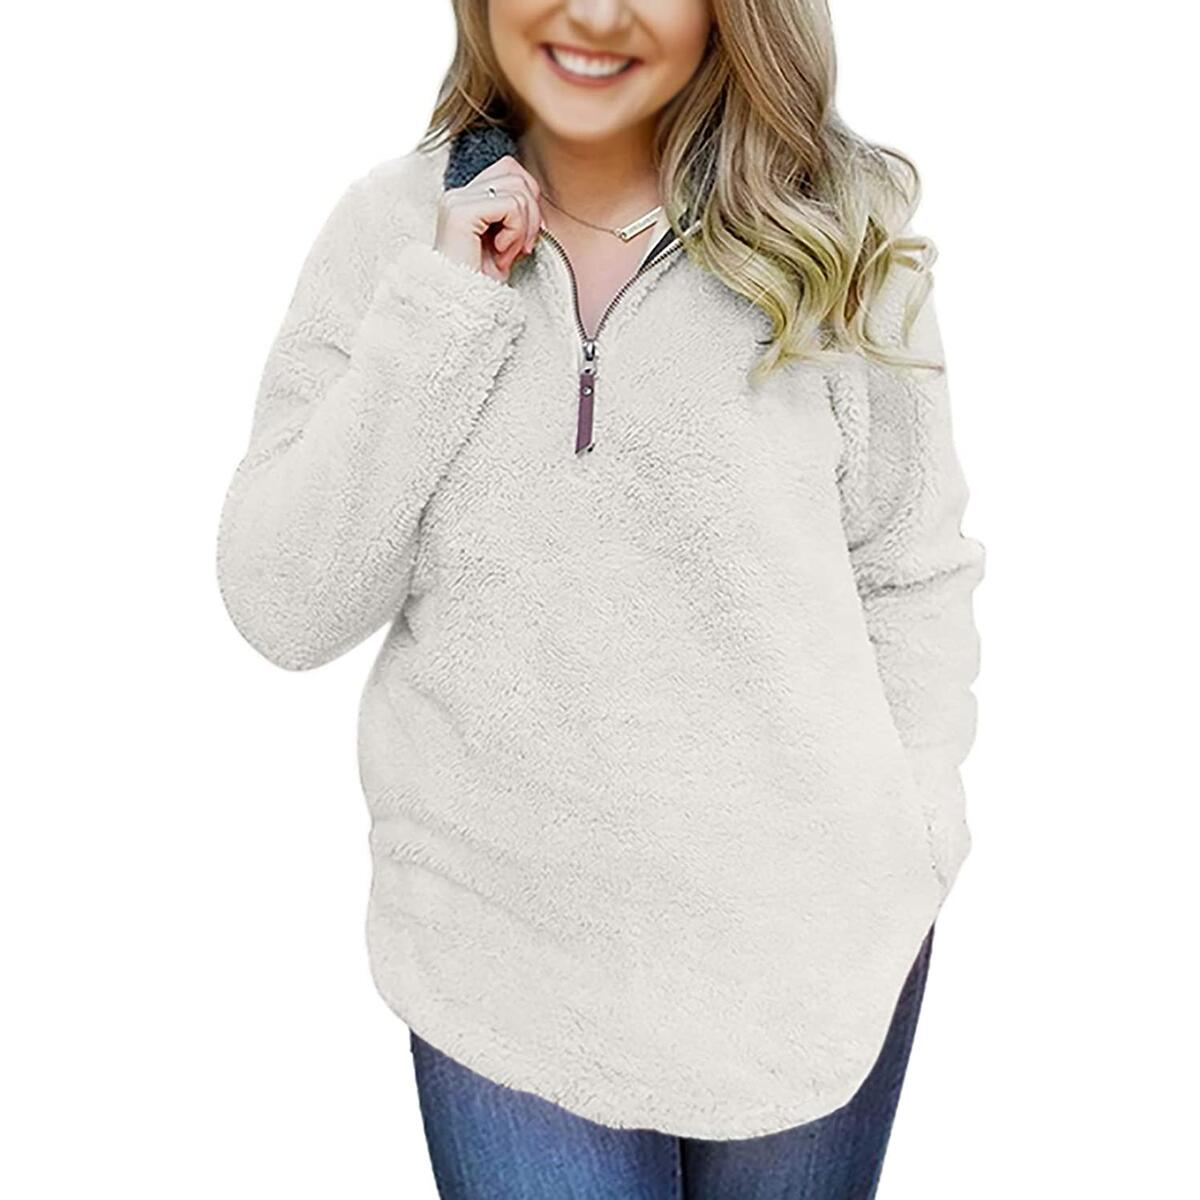 Women's Zipper Sherpa Pullover Soft Fuzzy Fleece Sweatshirt Jacket Sweater Winter Coat